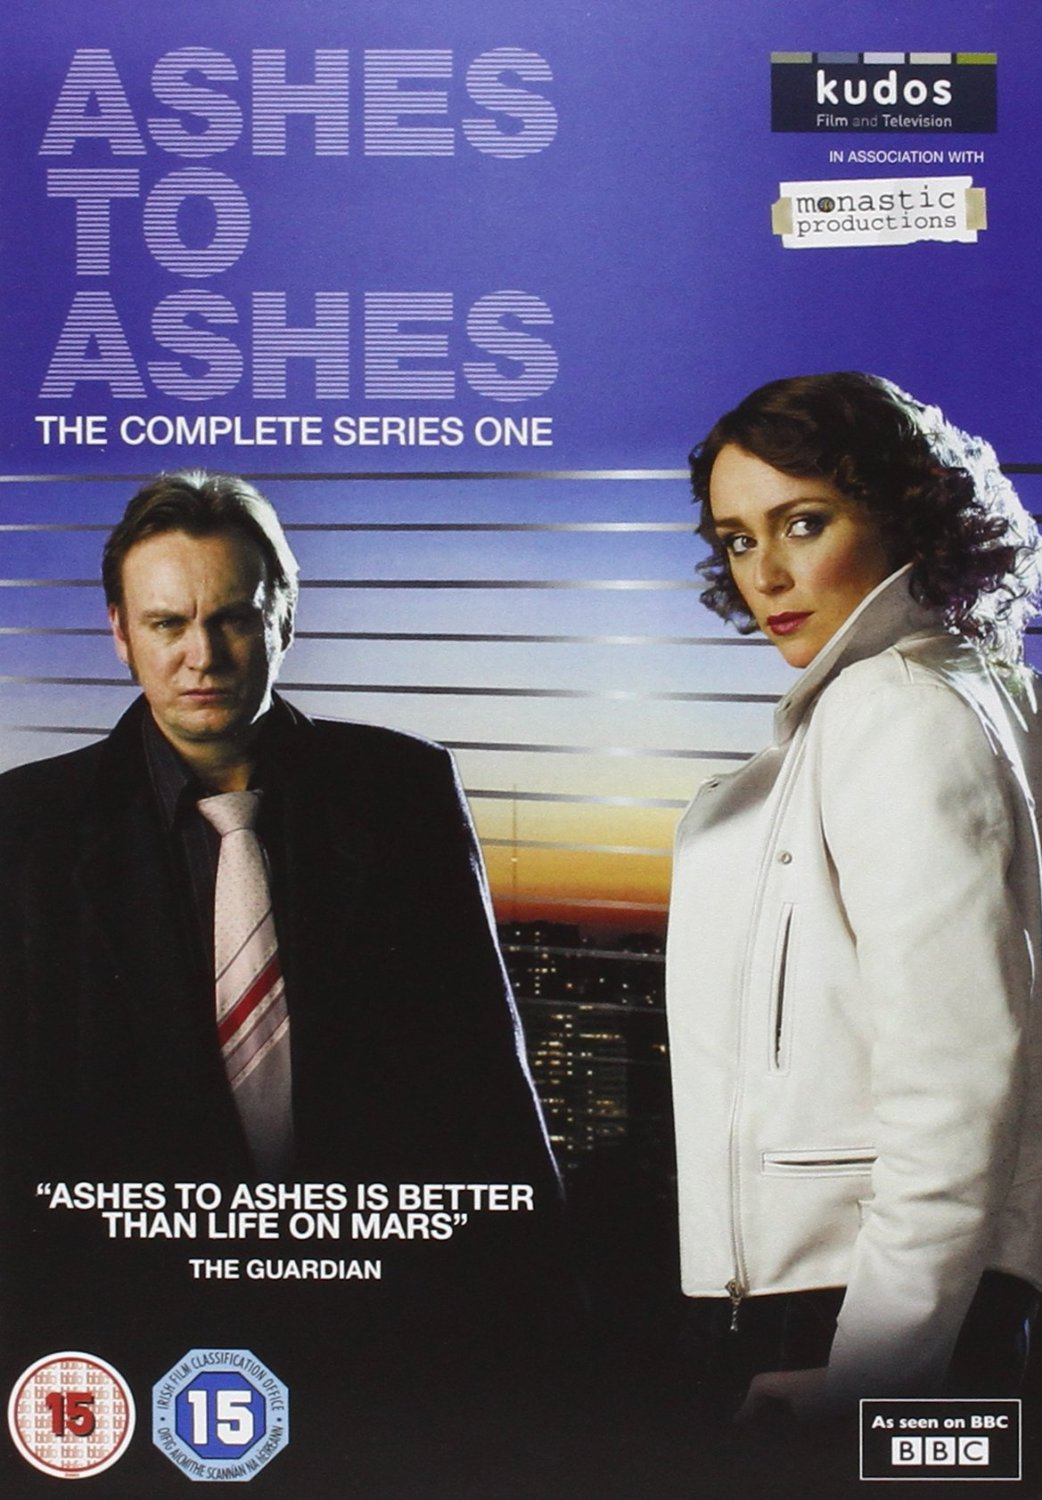 List of ashes to ashes episodes